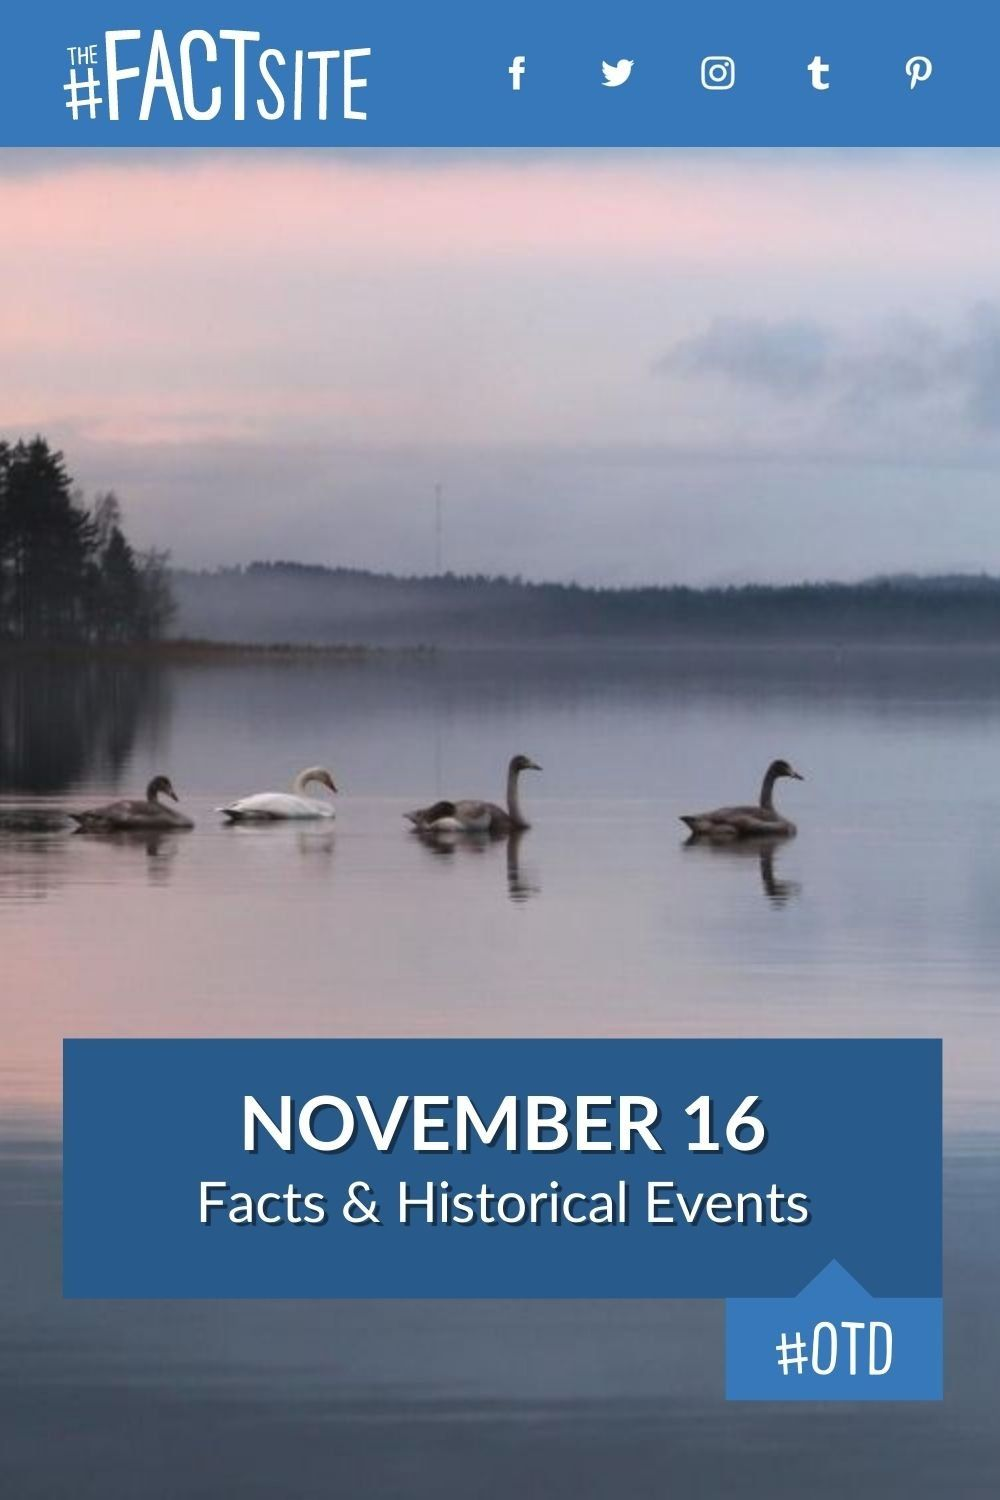 Facts & Historic Events That Happened on November 16